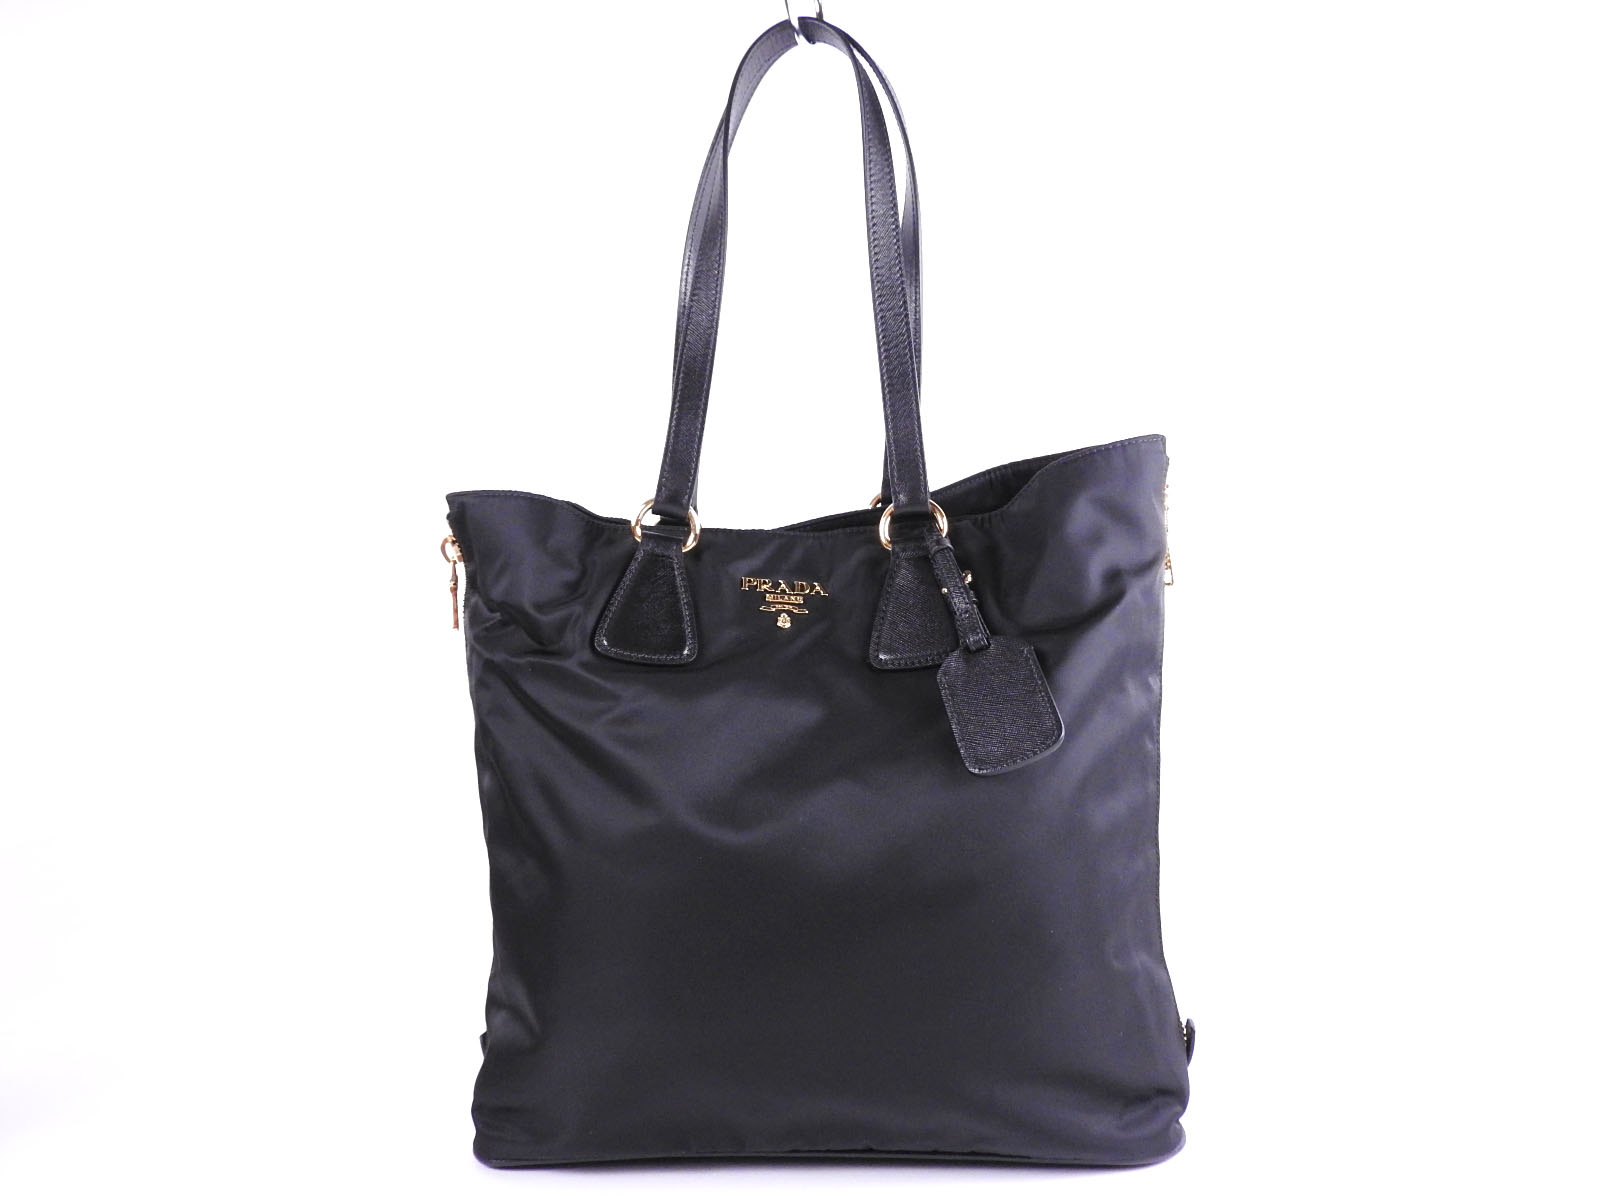 45431cbcce2b Auth PRADA Tessuto Nylon SAFFIANO Leather 2way Tote Bag Shoulder Bag Black  NERO Gold BR4988 A-9450